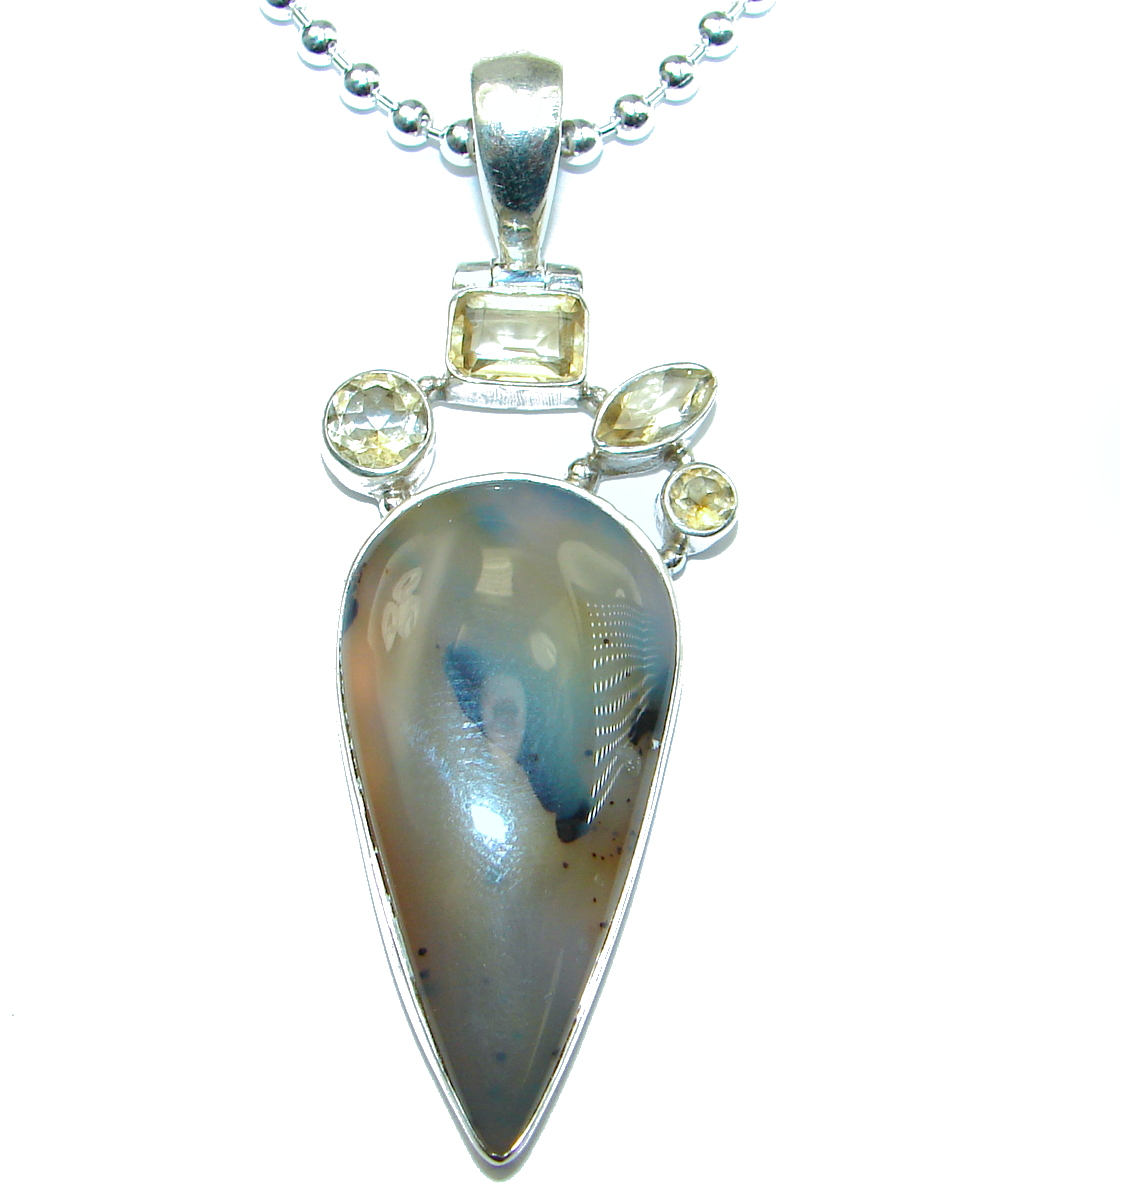 Great Impression Scentic Agate Sterling Silver necklace